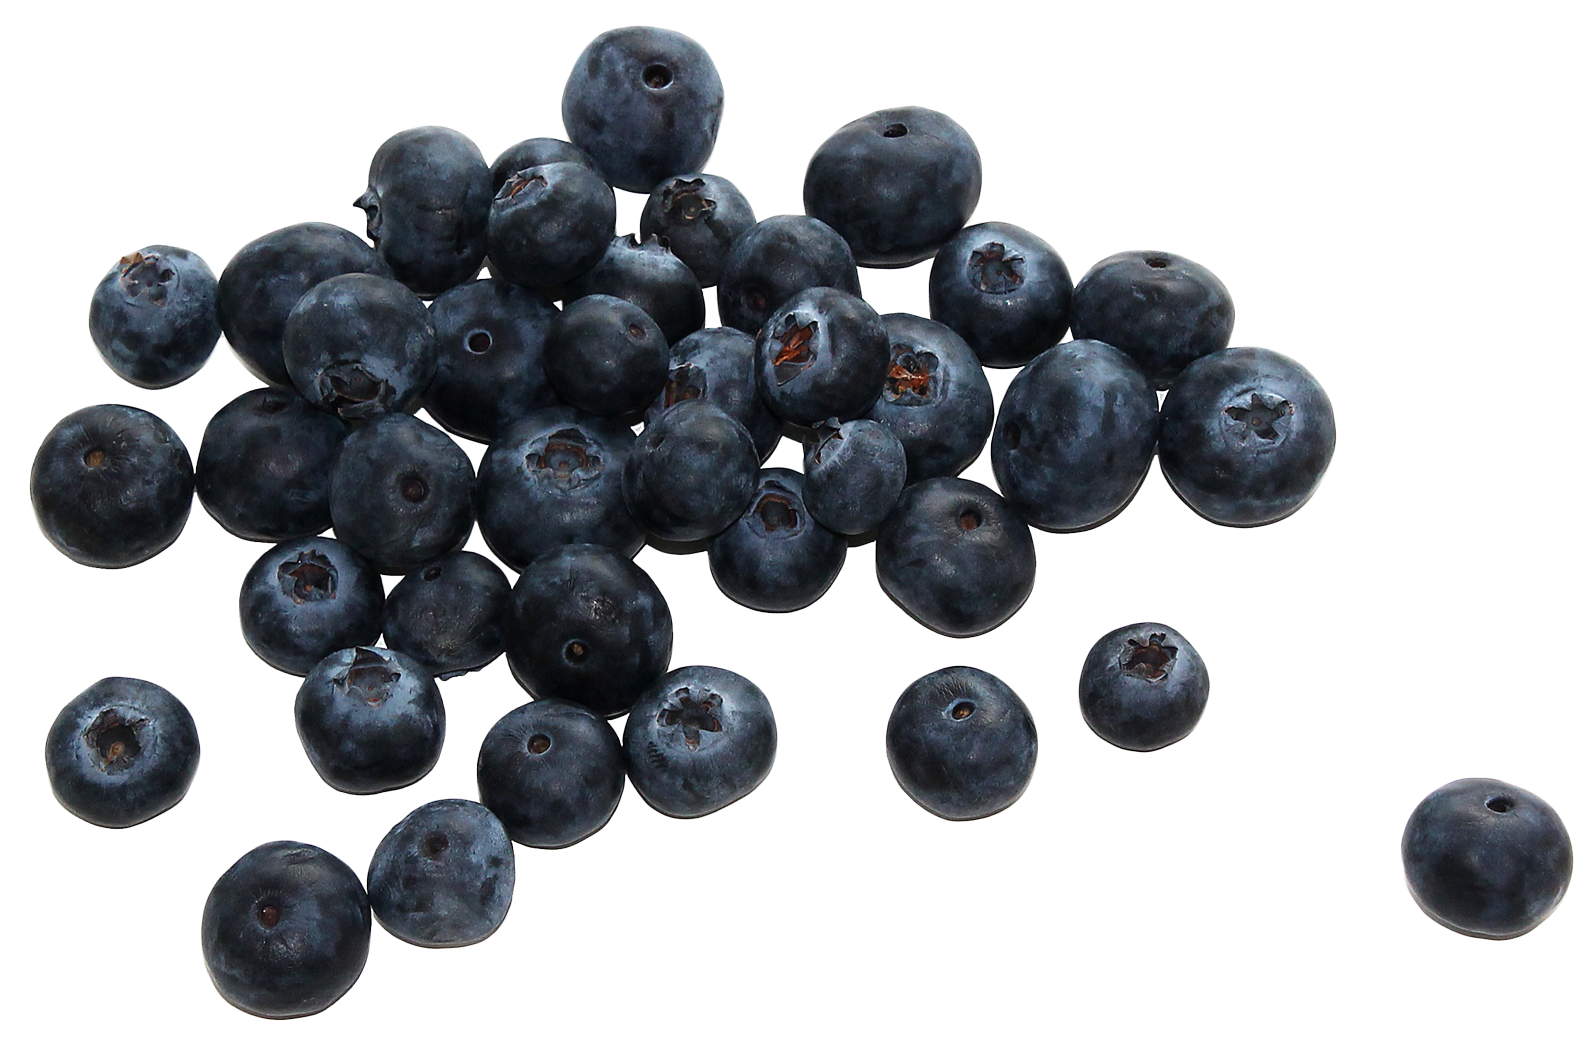 group fresh blueberries png image pngpix #28841